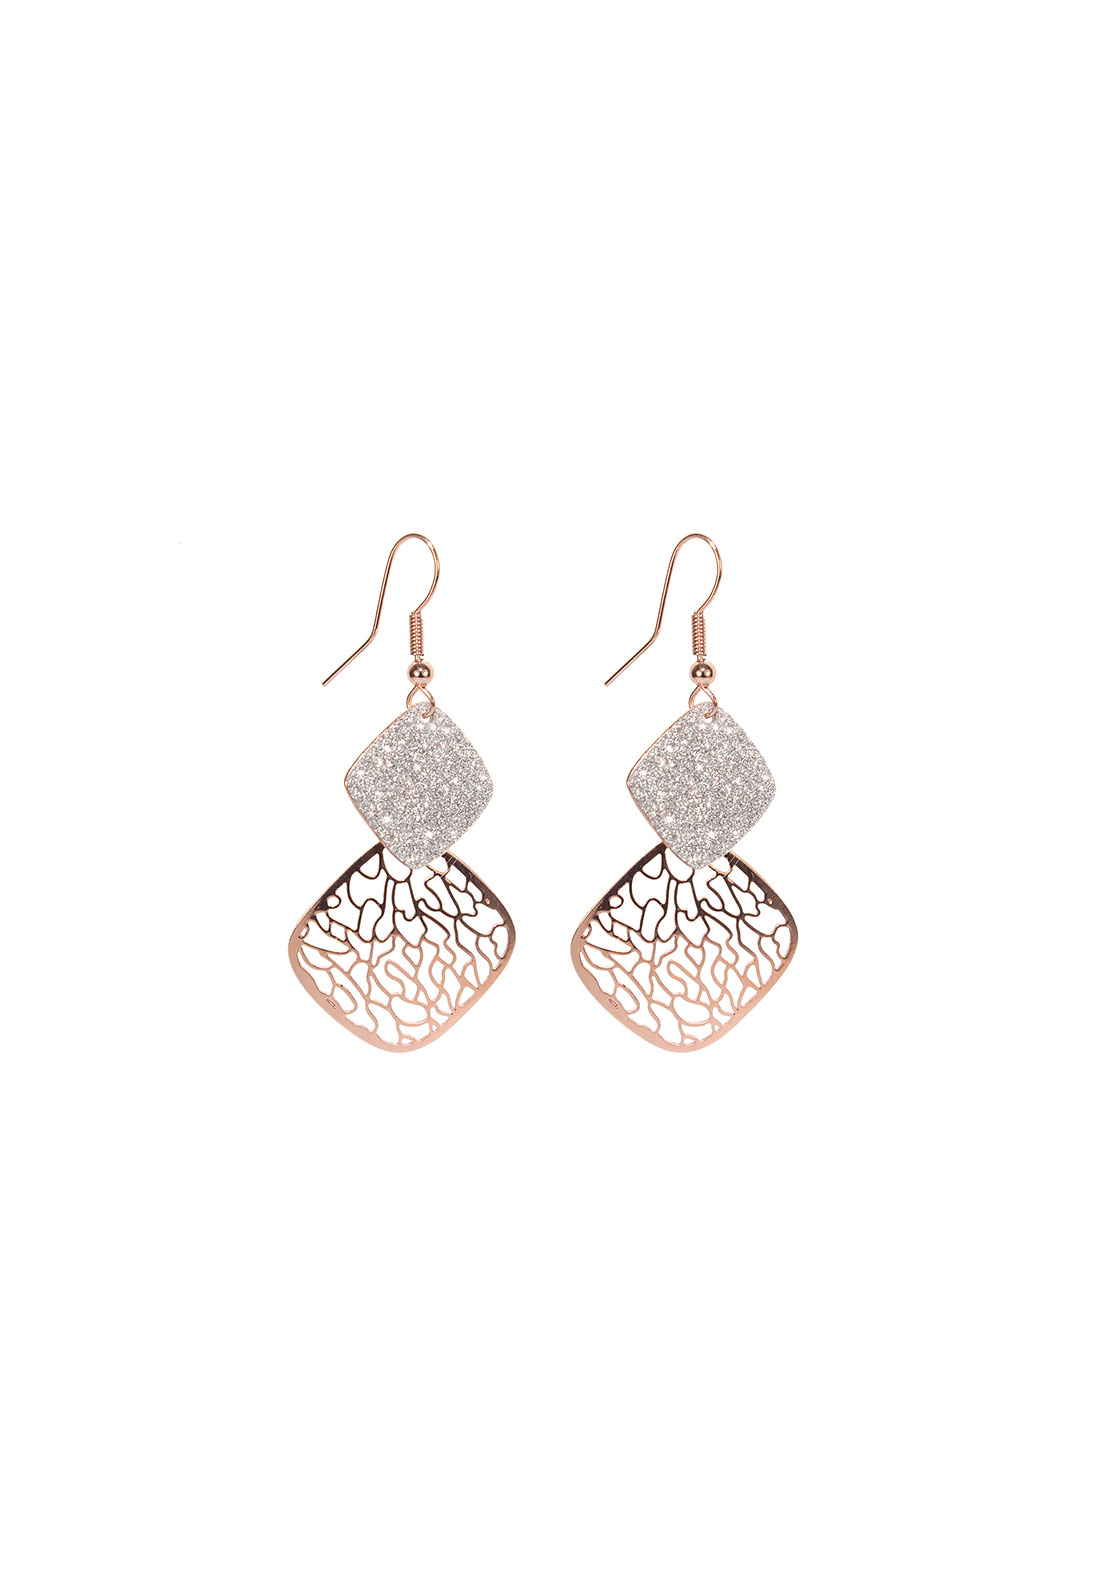 Absolute Jewellery Layered Drop Earrings